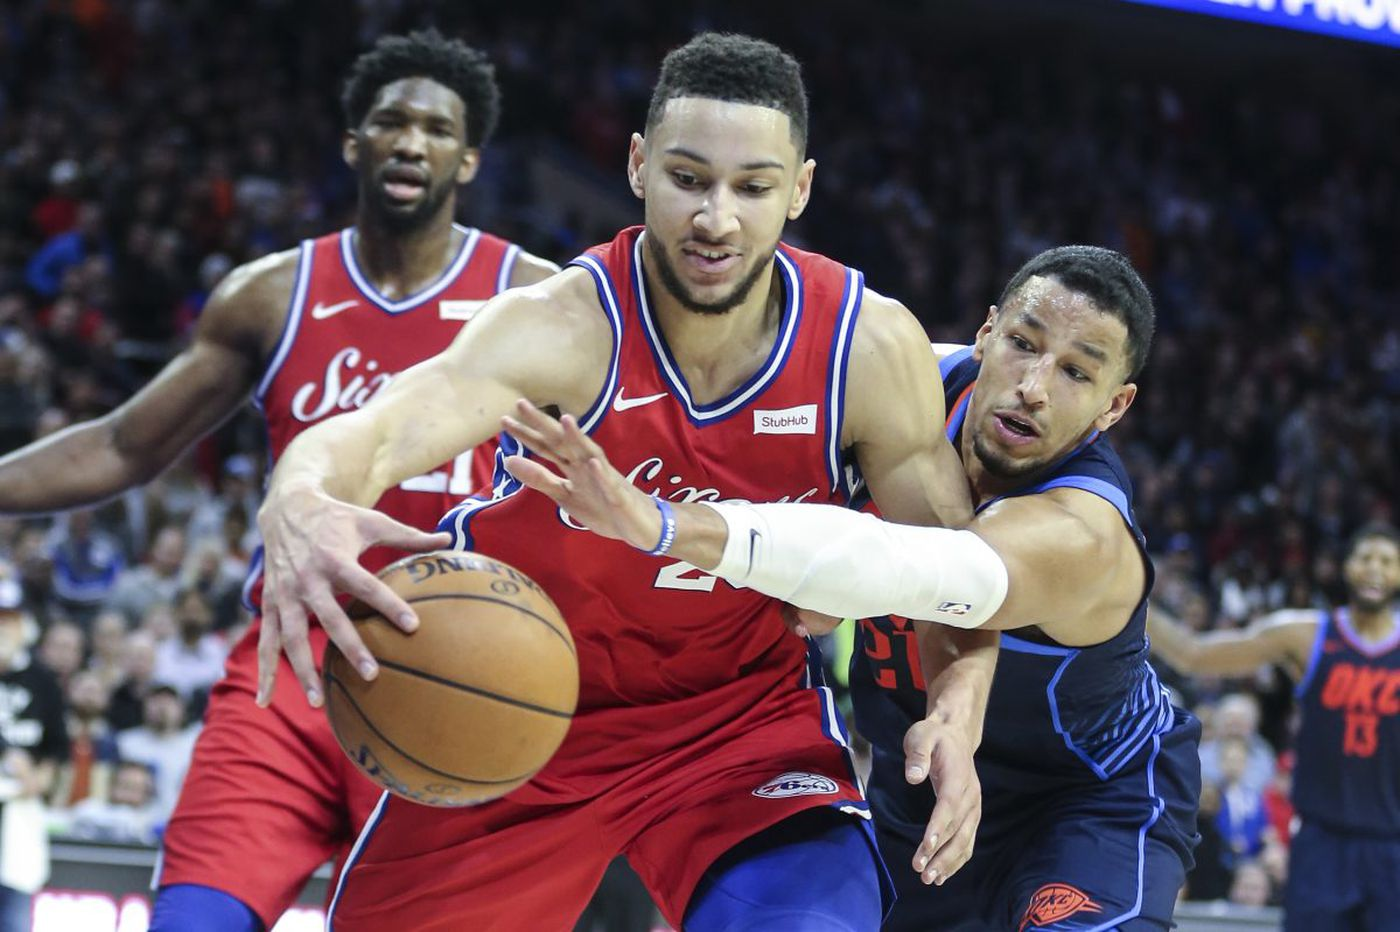 Sixers-Thunder observations, 'best' and 'worst' awards: Russell Westbrook, Robert Covington and mind-boggling final possession